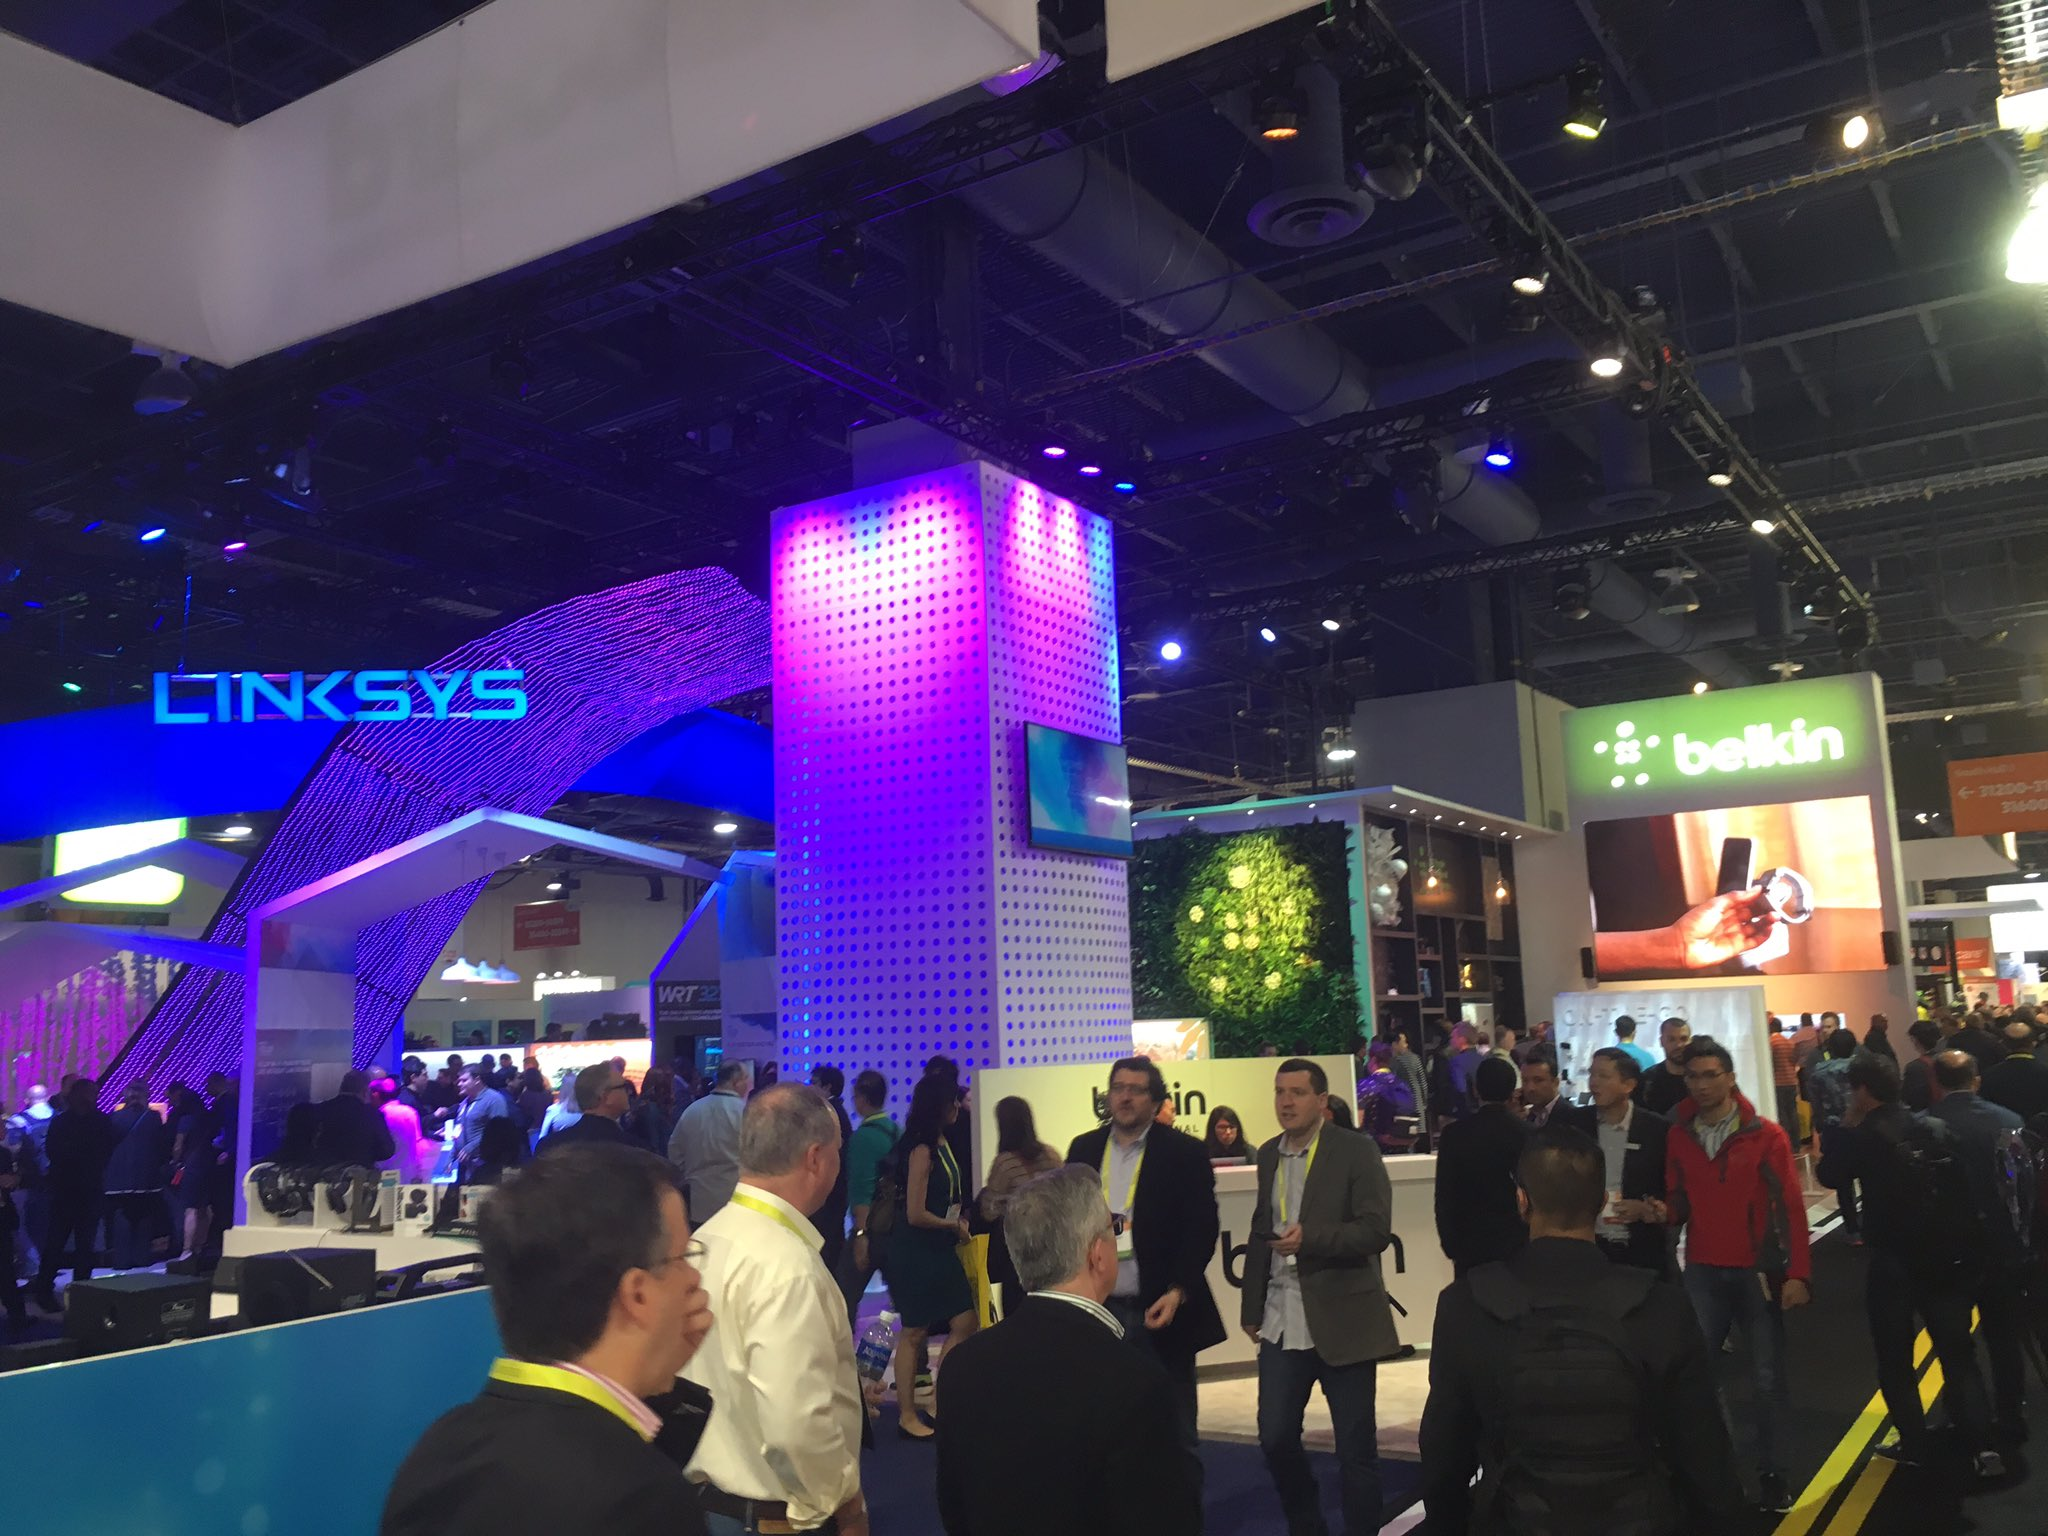 Game on #ces2017 @belkin @Linksys @WEMO #linksysvelop #PeopleInspiredProducts #mobile #wifi #smarthome #IoT https://t.co/KQleS2IqnK